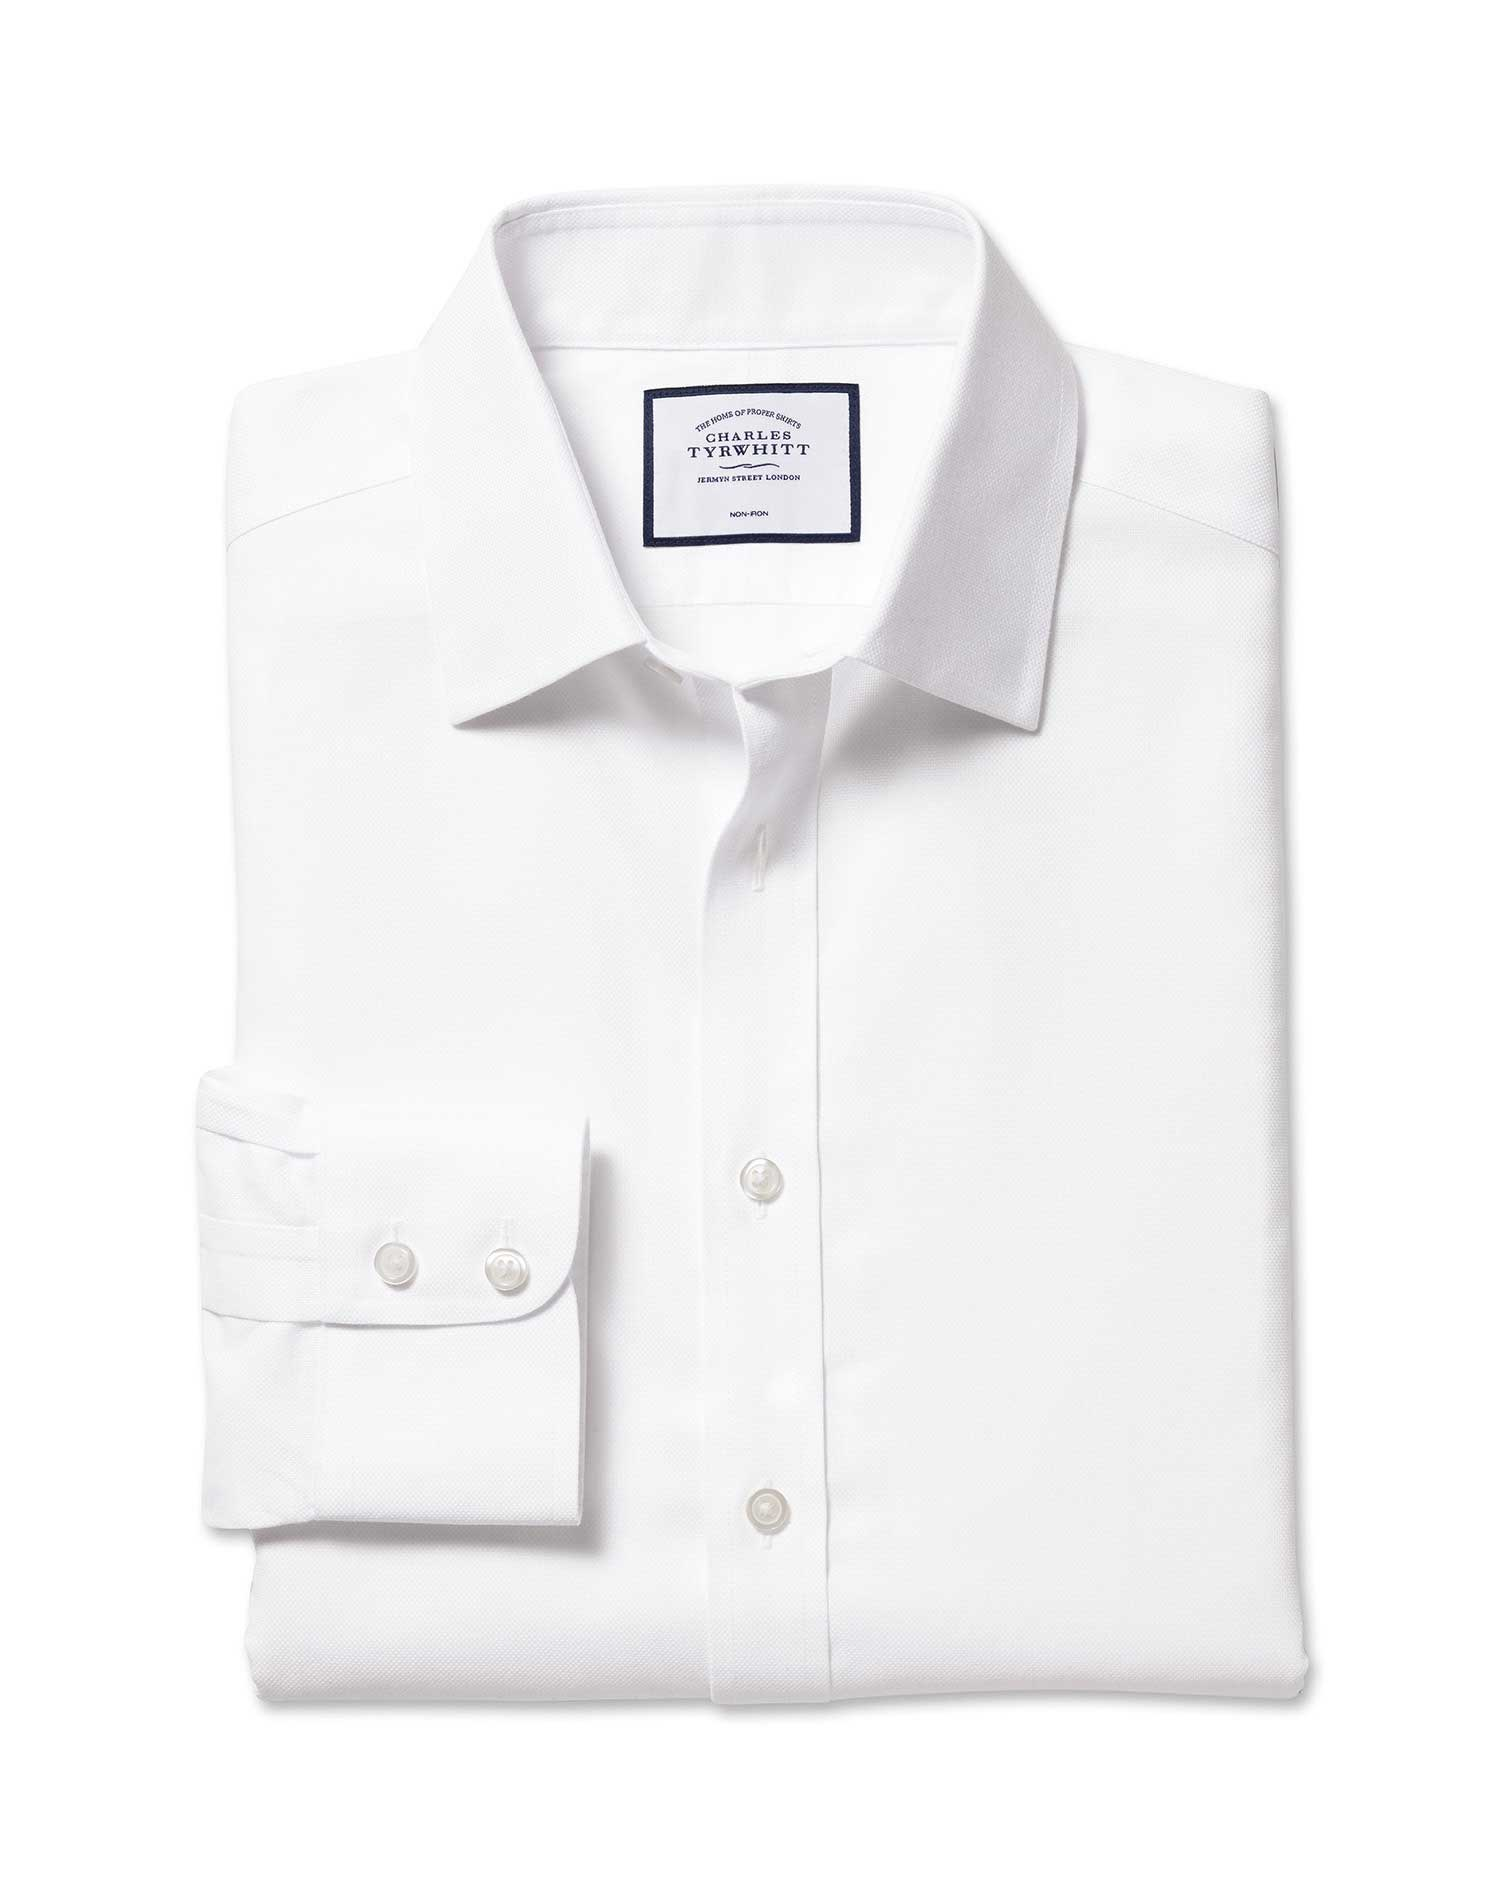 Slim Fit Non-Iron Royal Panama White Cotton Formal Shirt Single Cuff Size 17/35 by Charles Tyrwhitt